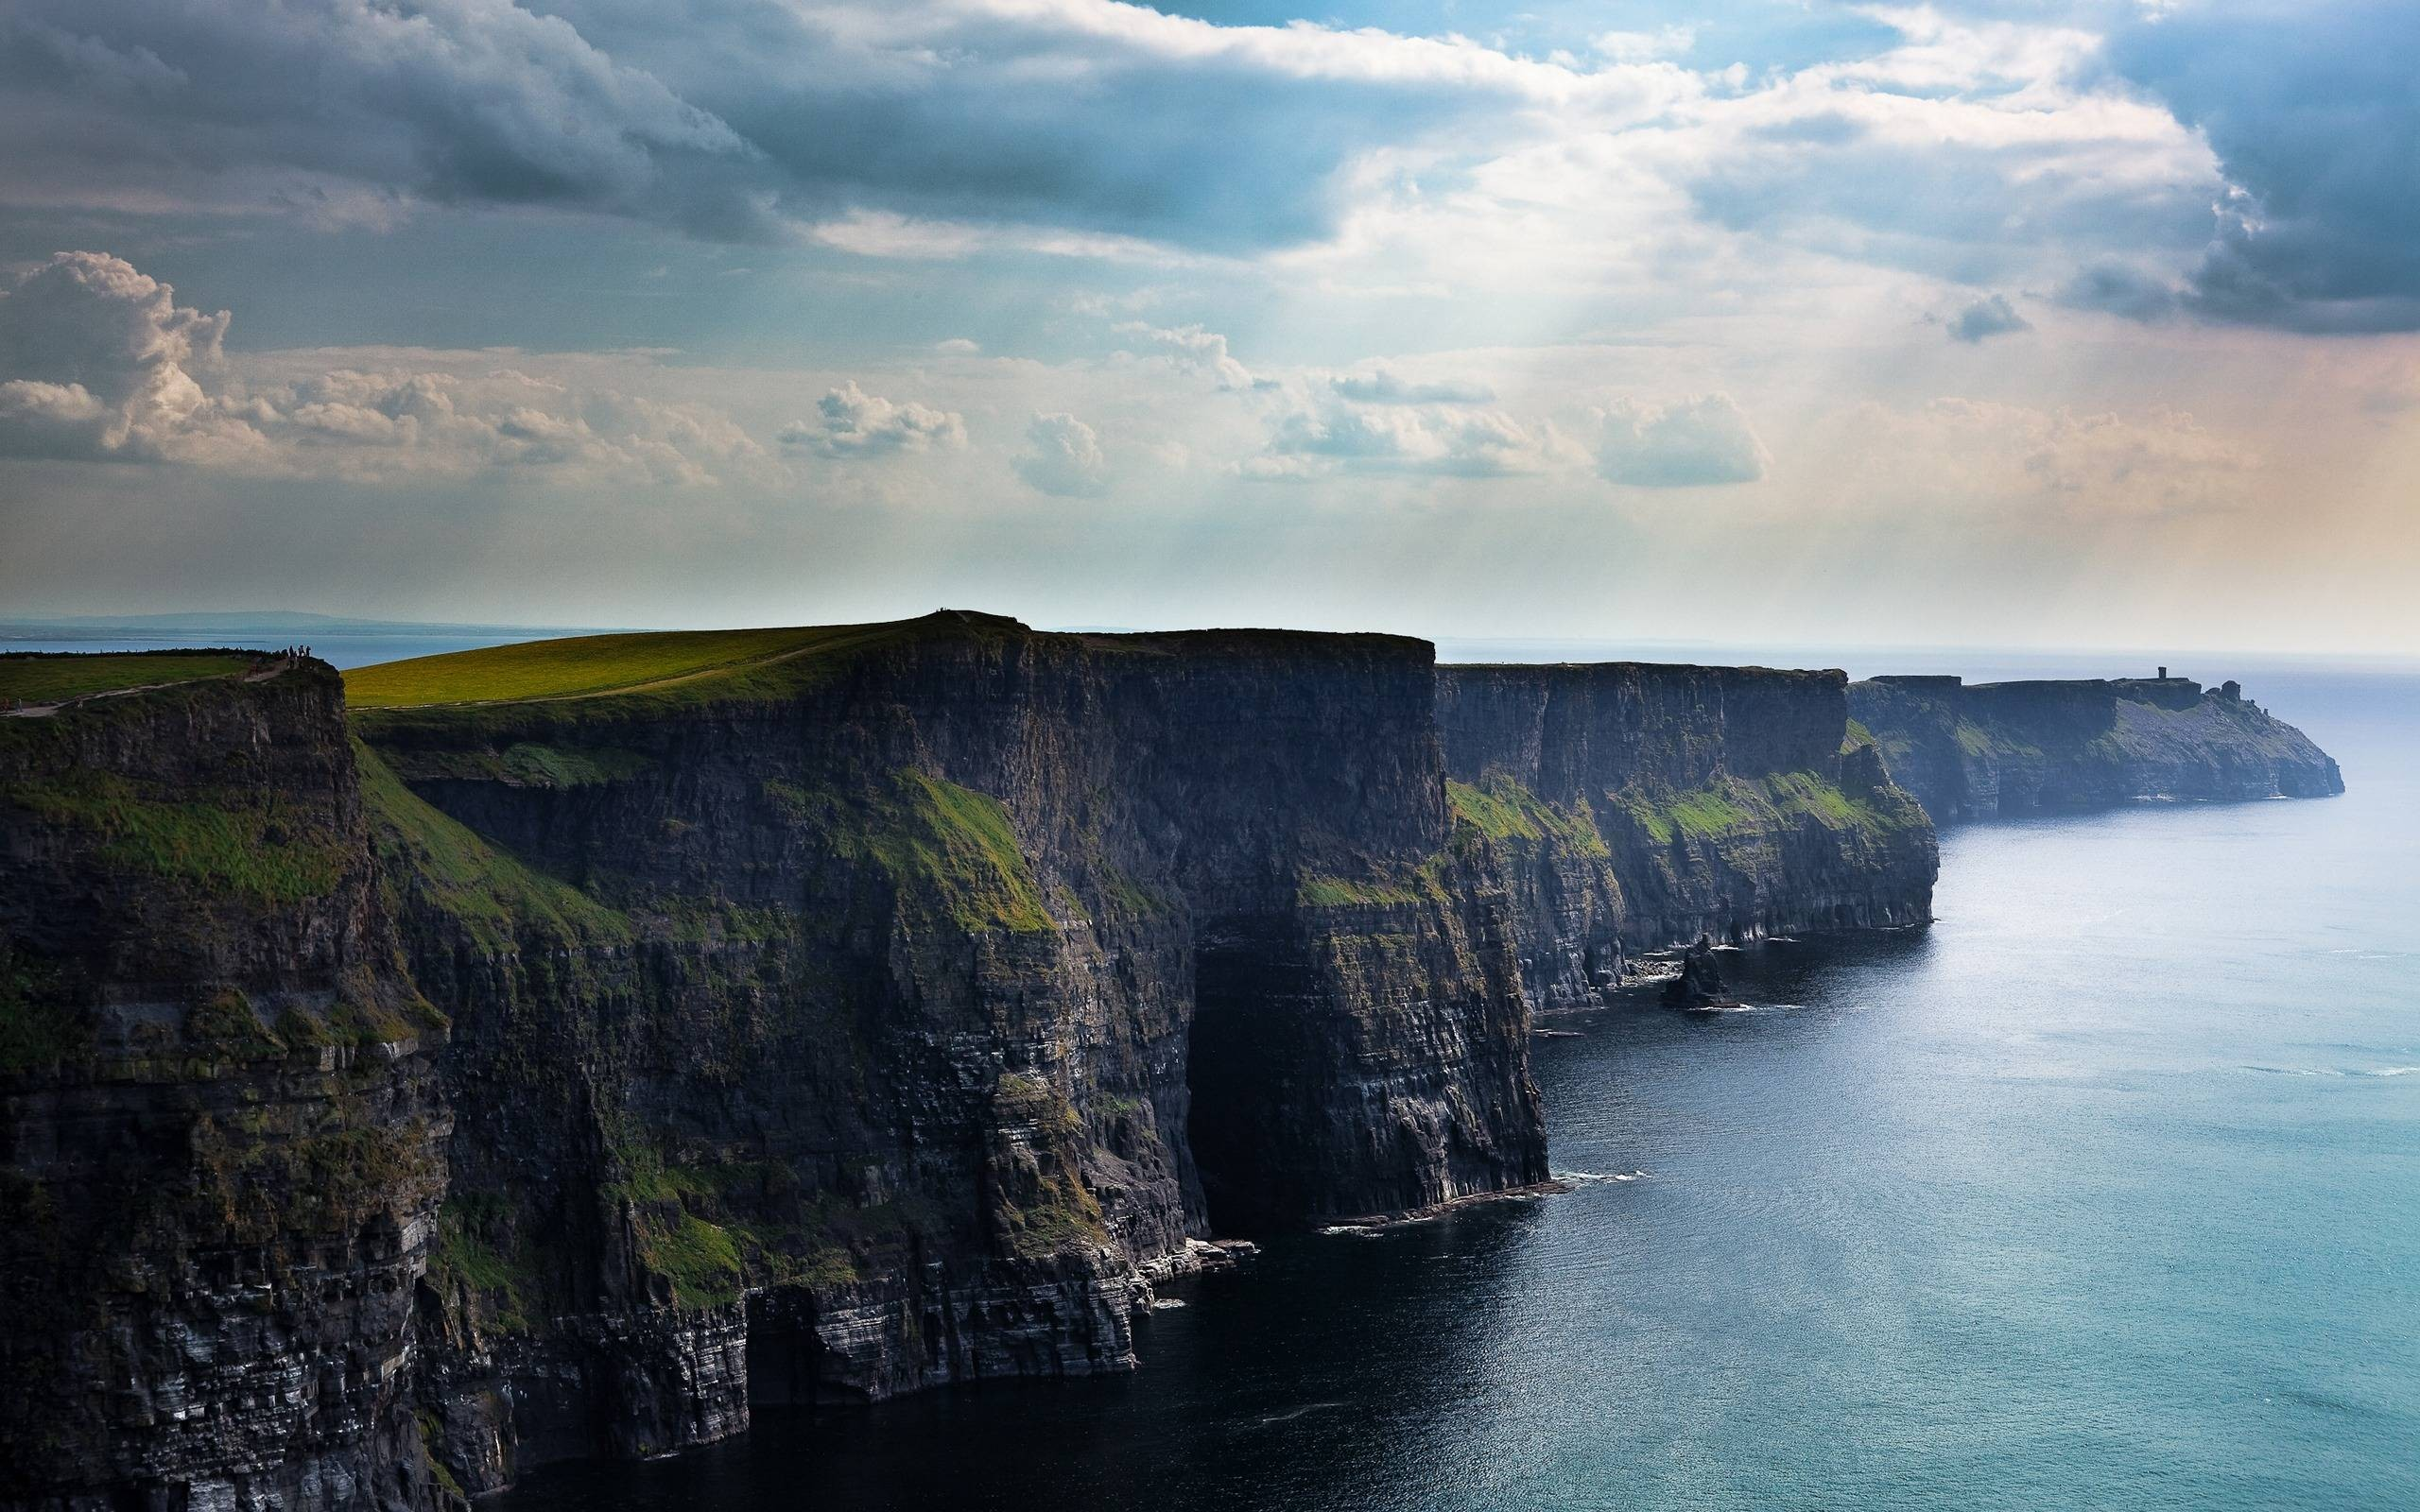 ireland wallpaper ·① download free beautiful hd wallpapers for